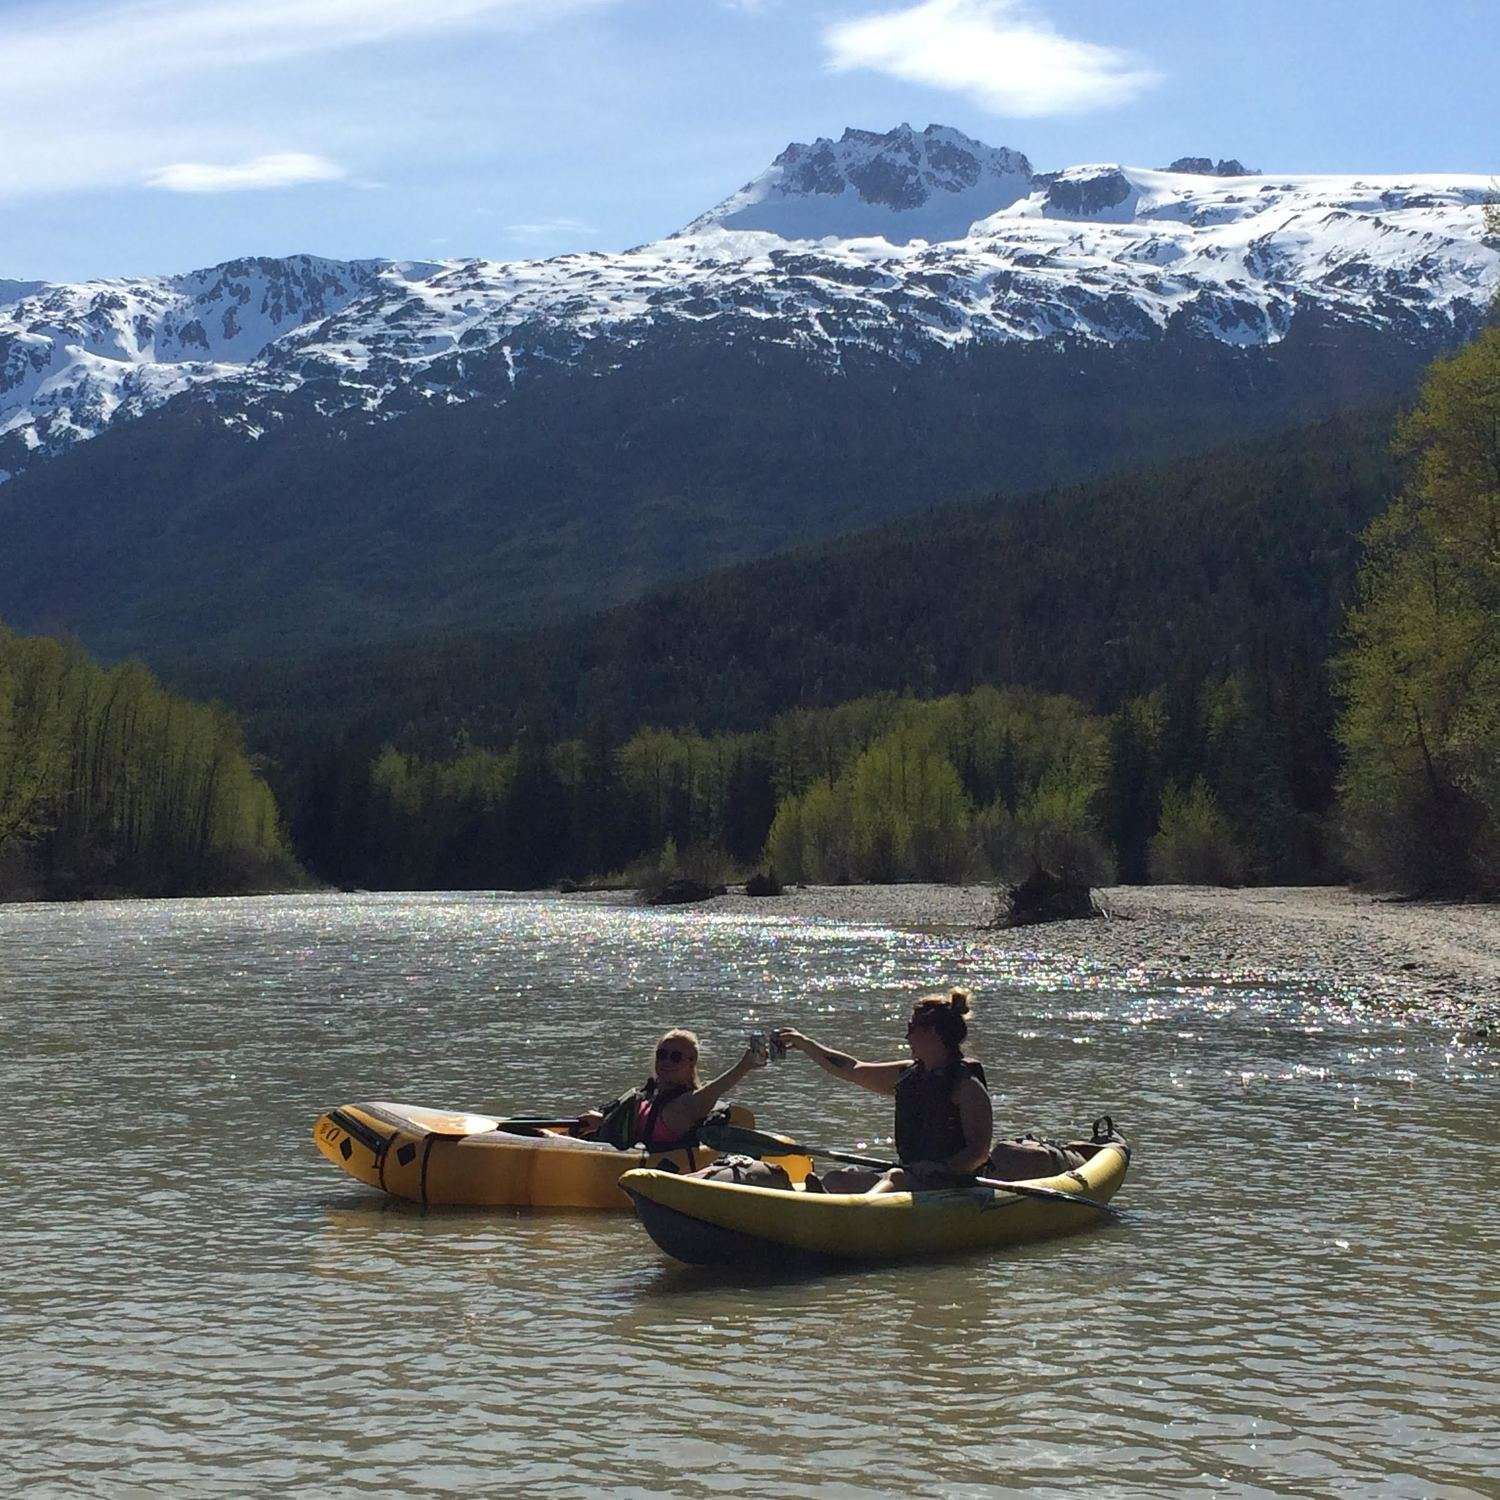 Sarah (left) wearing the Astral Layla PFD, and Josette (right) wearing the NRS Vapor on the Taiya River, Dyea, Alaska.